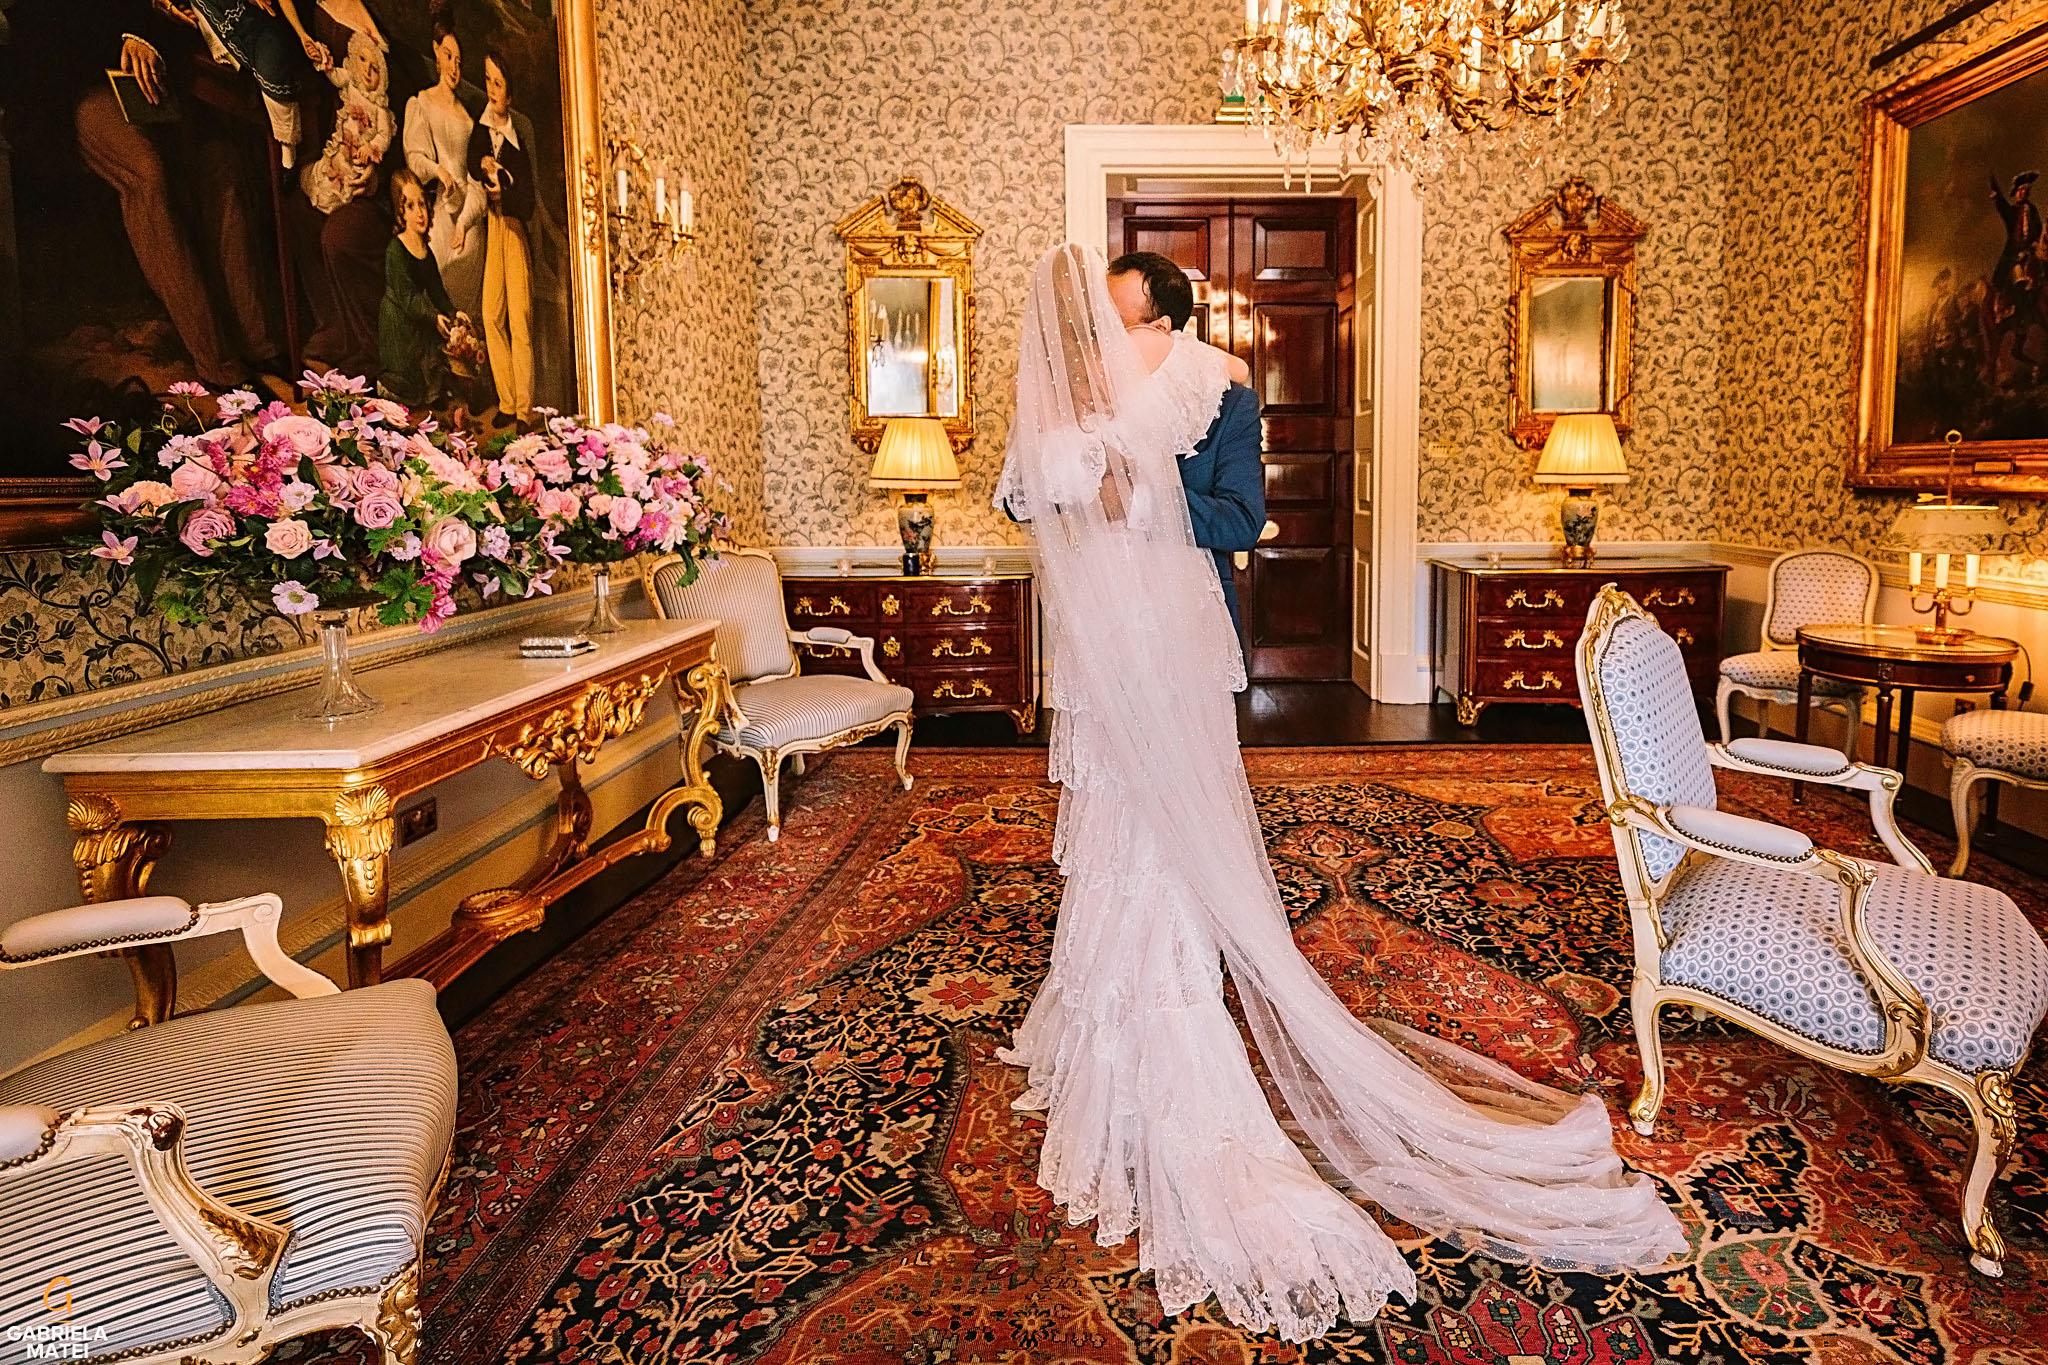 Bride and groom hug each other tightly during first look in Queen Elisabeth room at The Ritz hotel in London